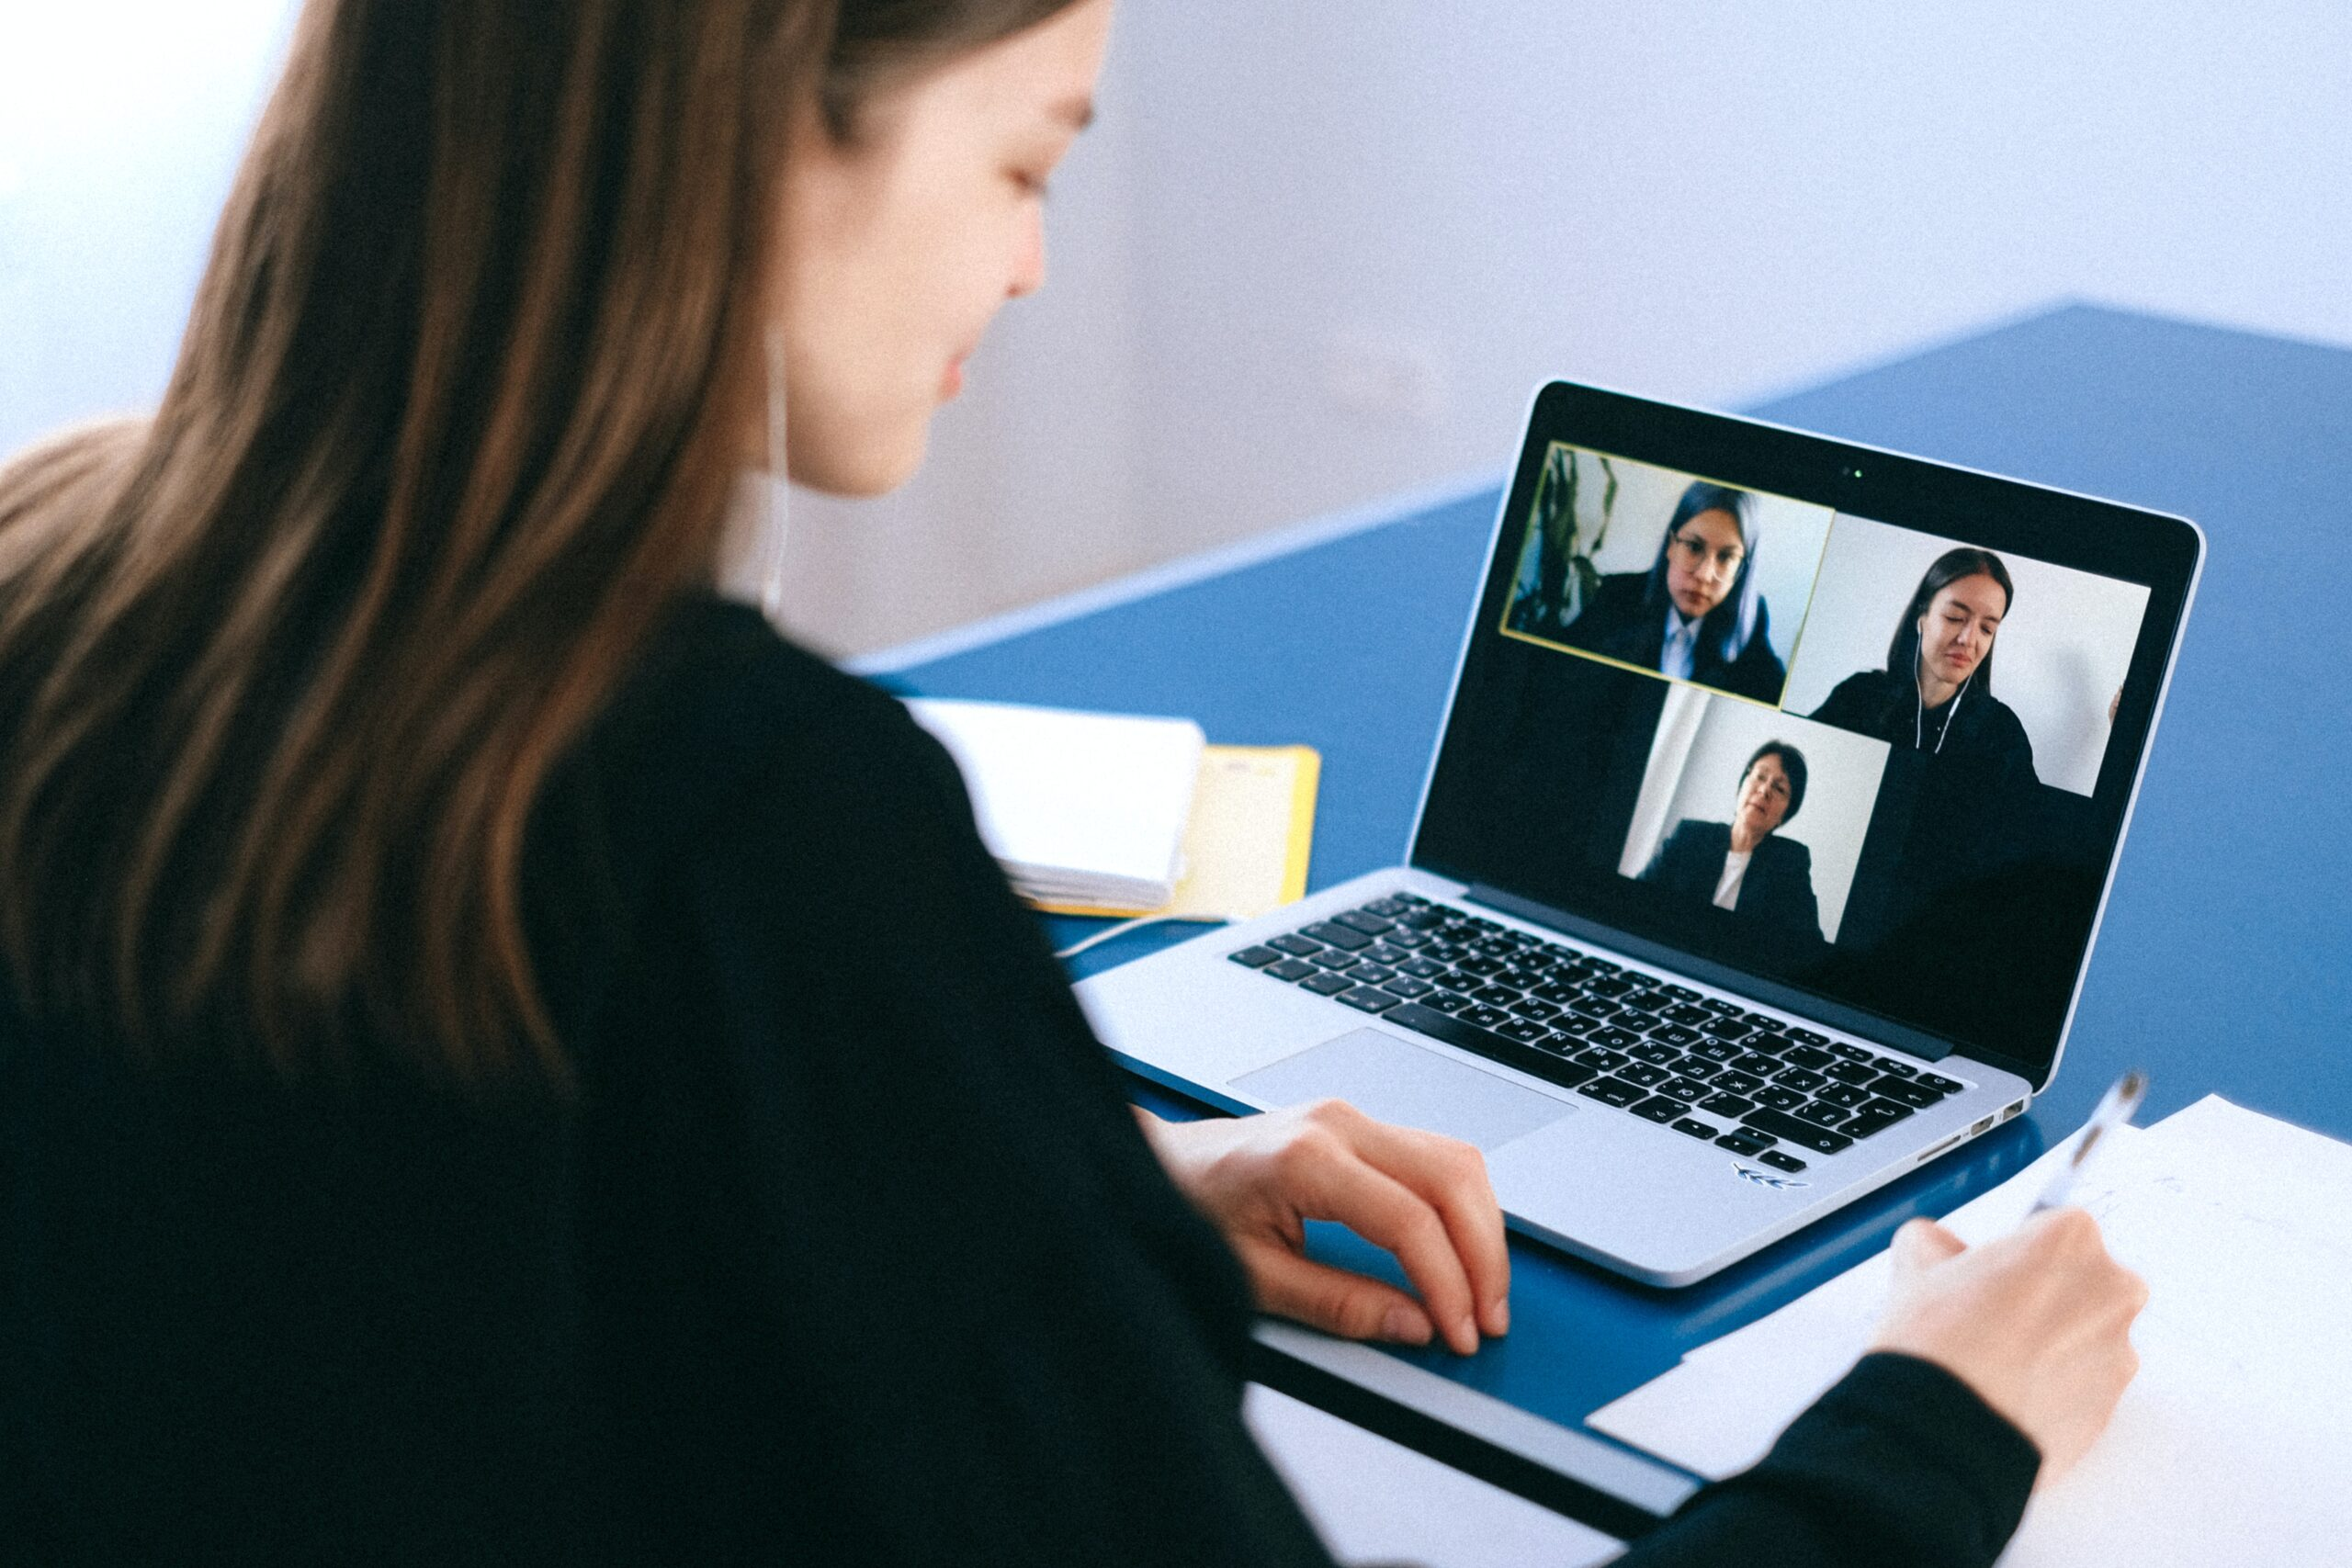 woman-sitting-at-desk-on-video-call-on-laptop